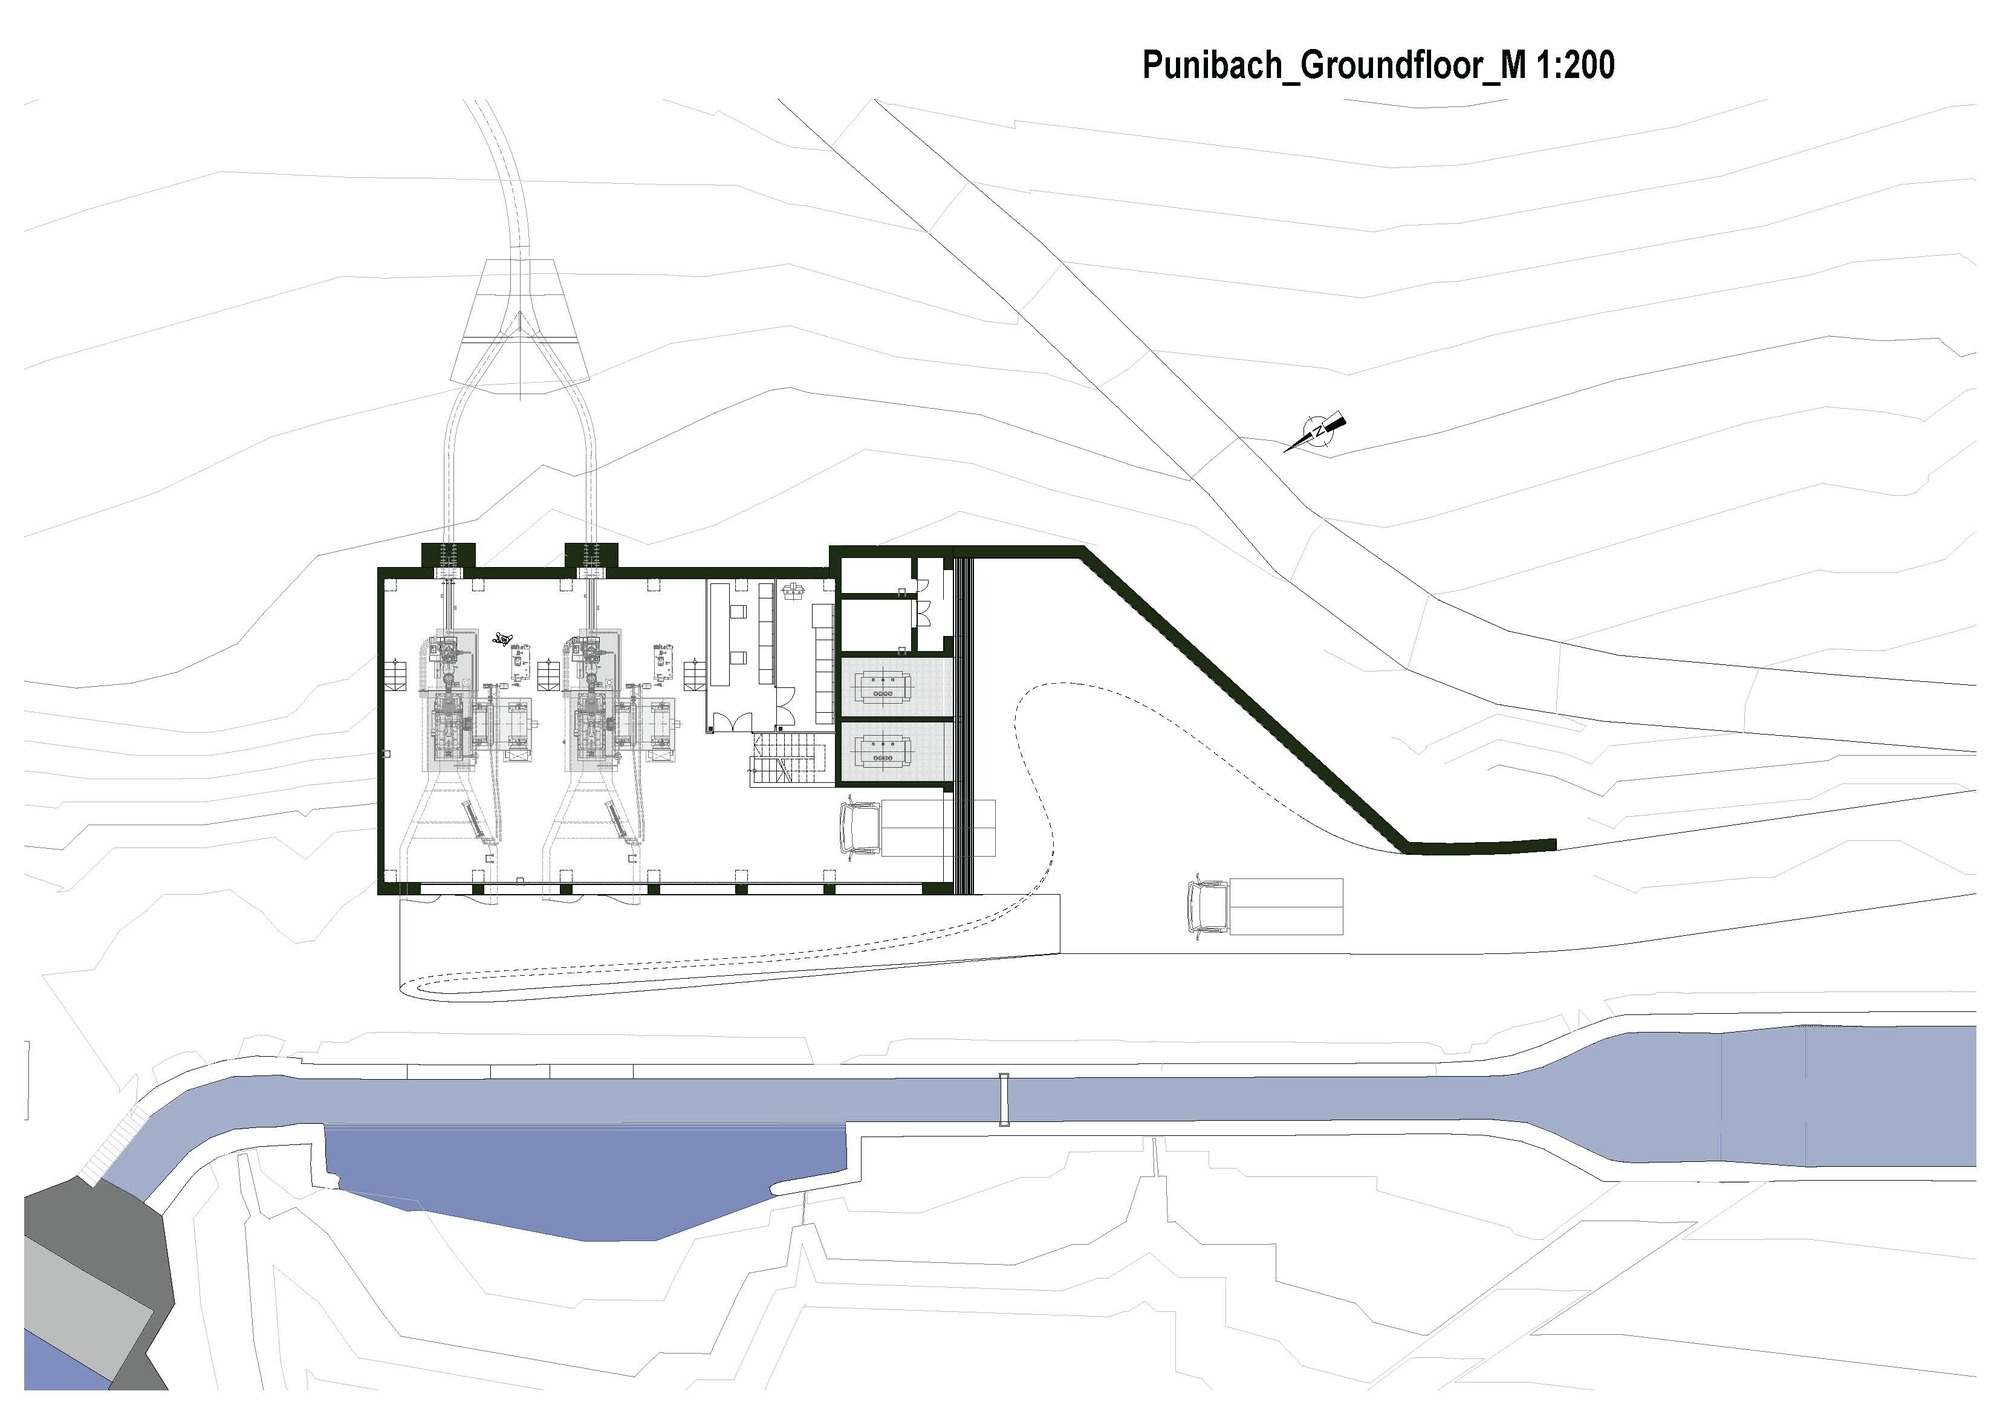 Gallery Of Hydroelectric Power Station Punibach Monovolume Diagram Zoom Image View Original Size